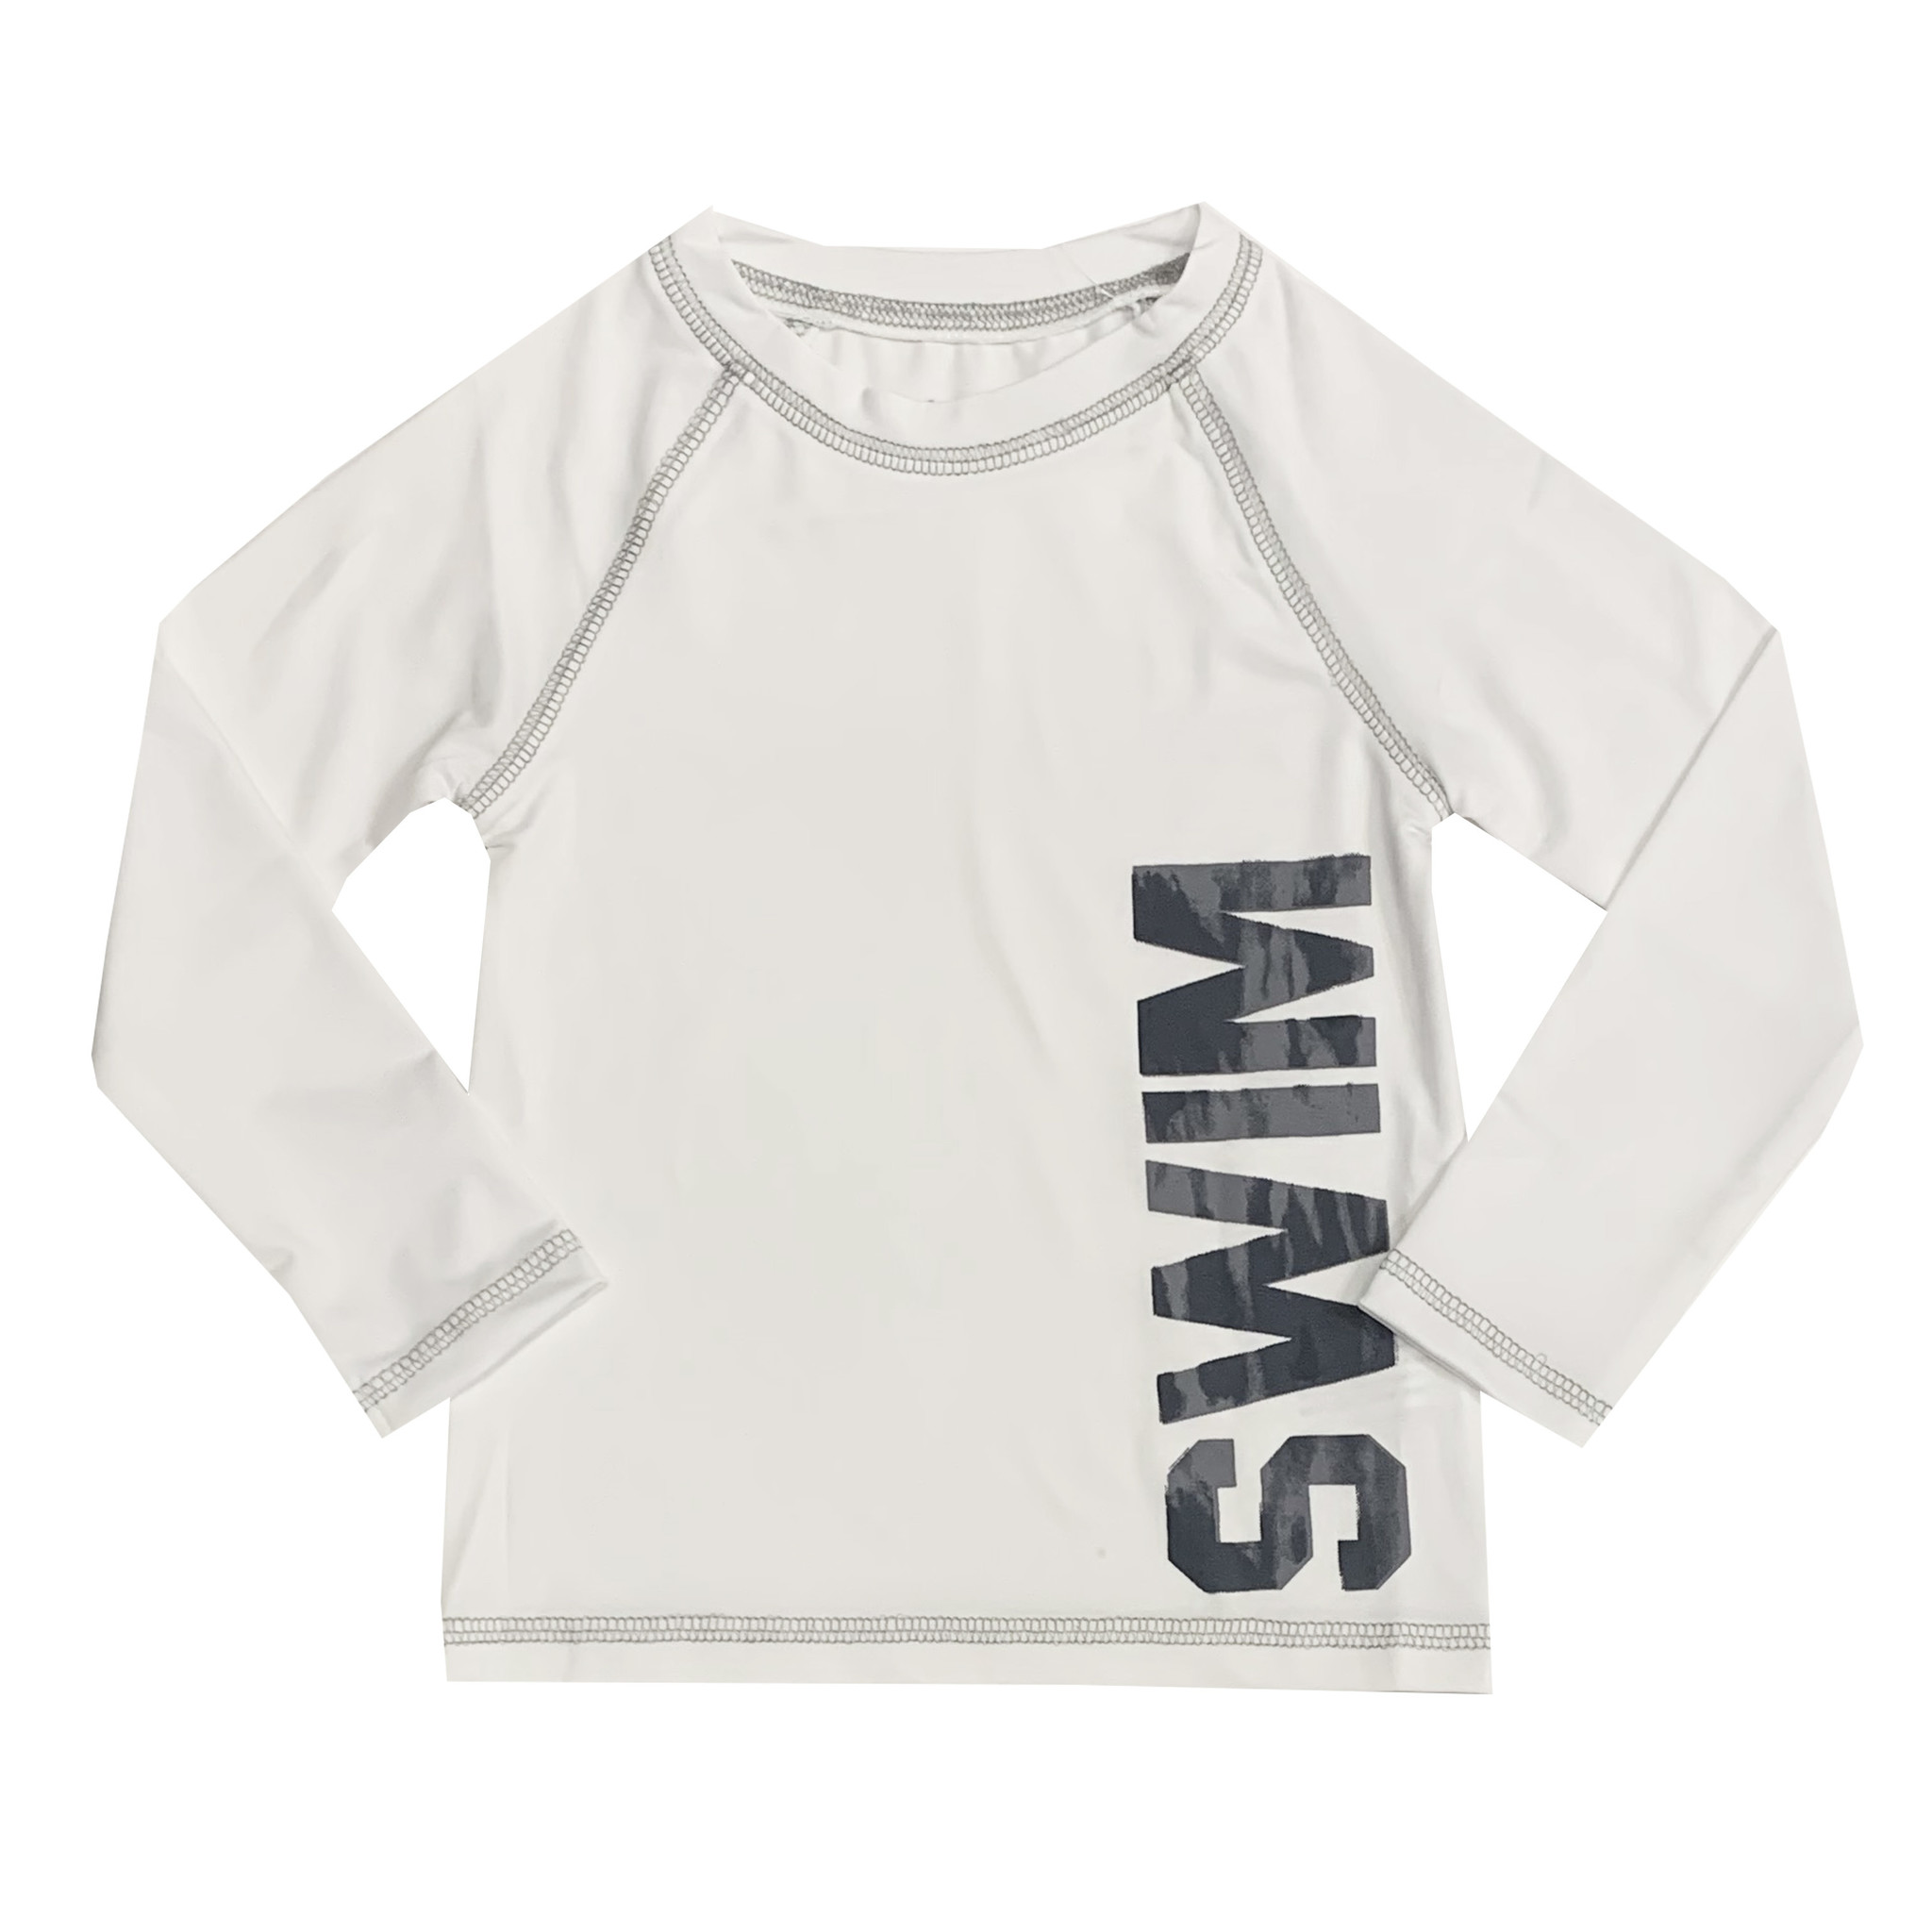 Mish White & Grey Swim Rashguard